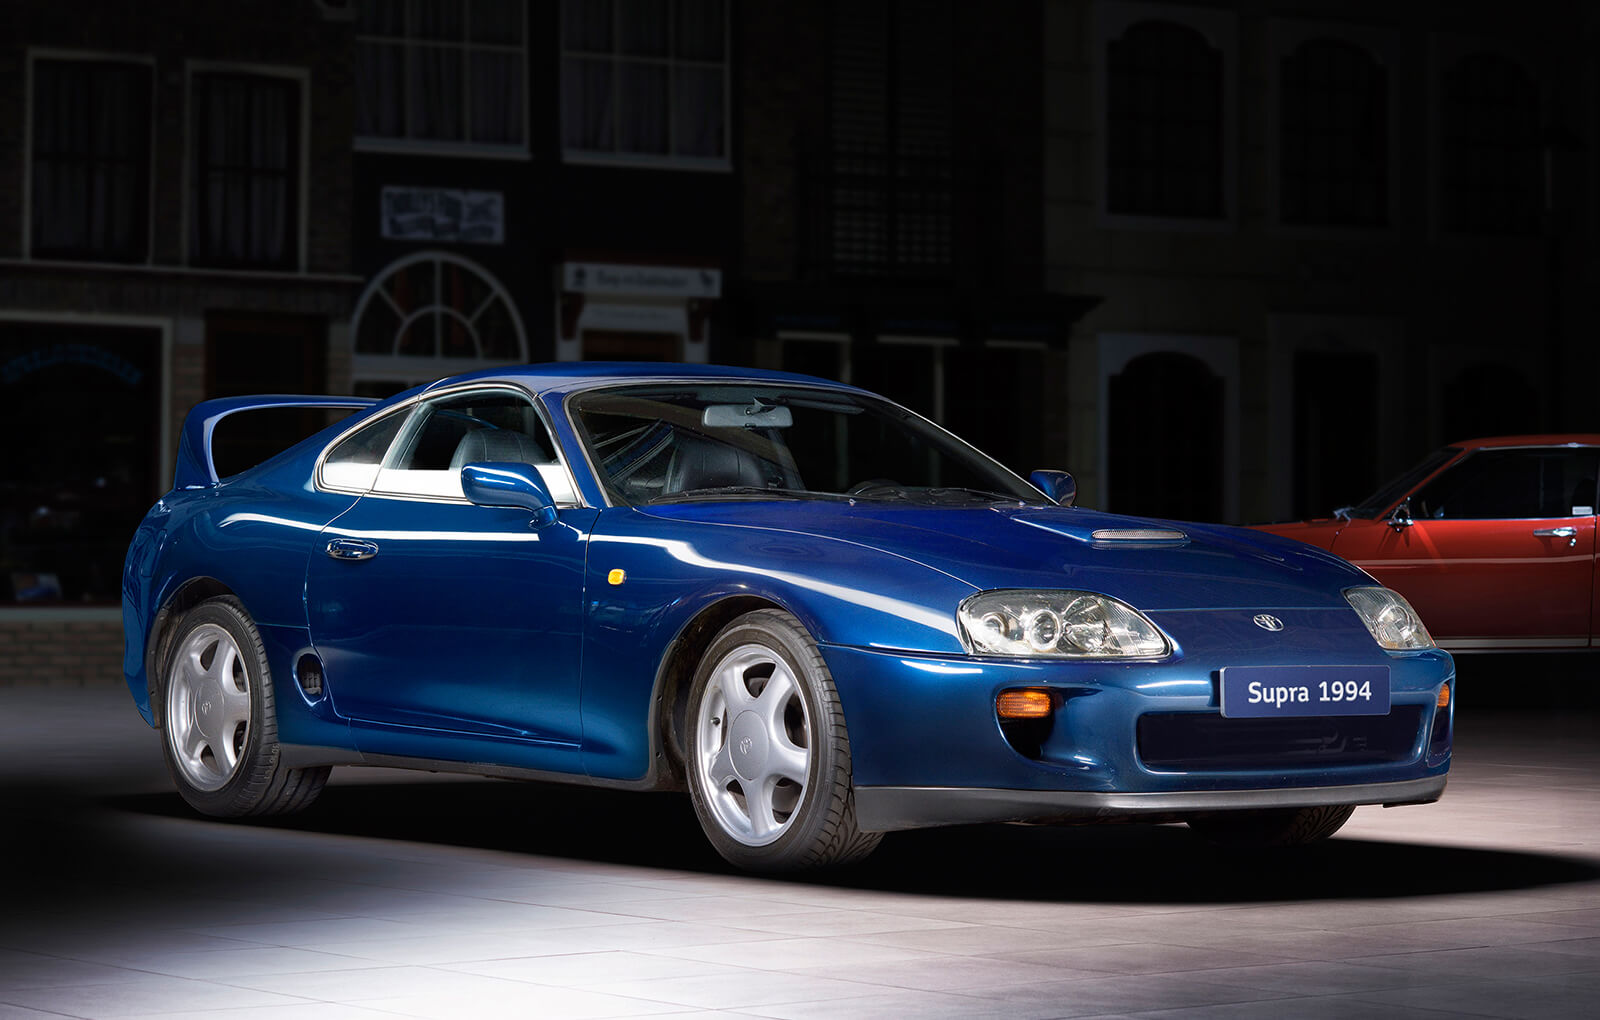 supra history of toyota sports cars toyota uk. Black Bedroom Furniture Sets. Home Design Ideas